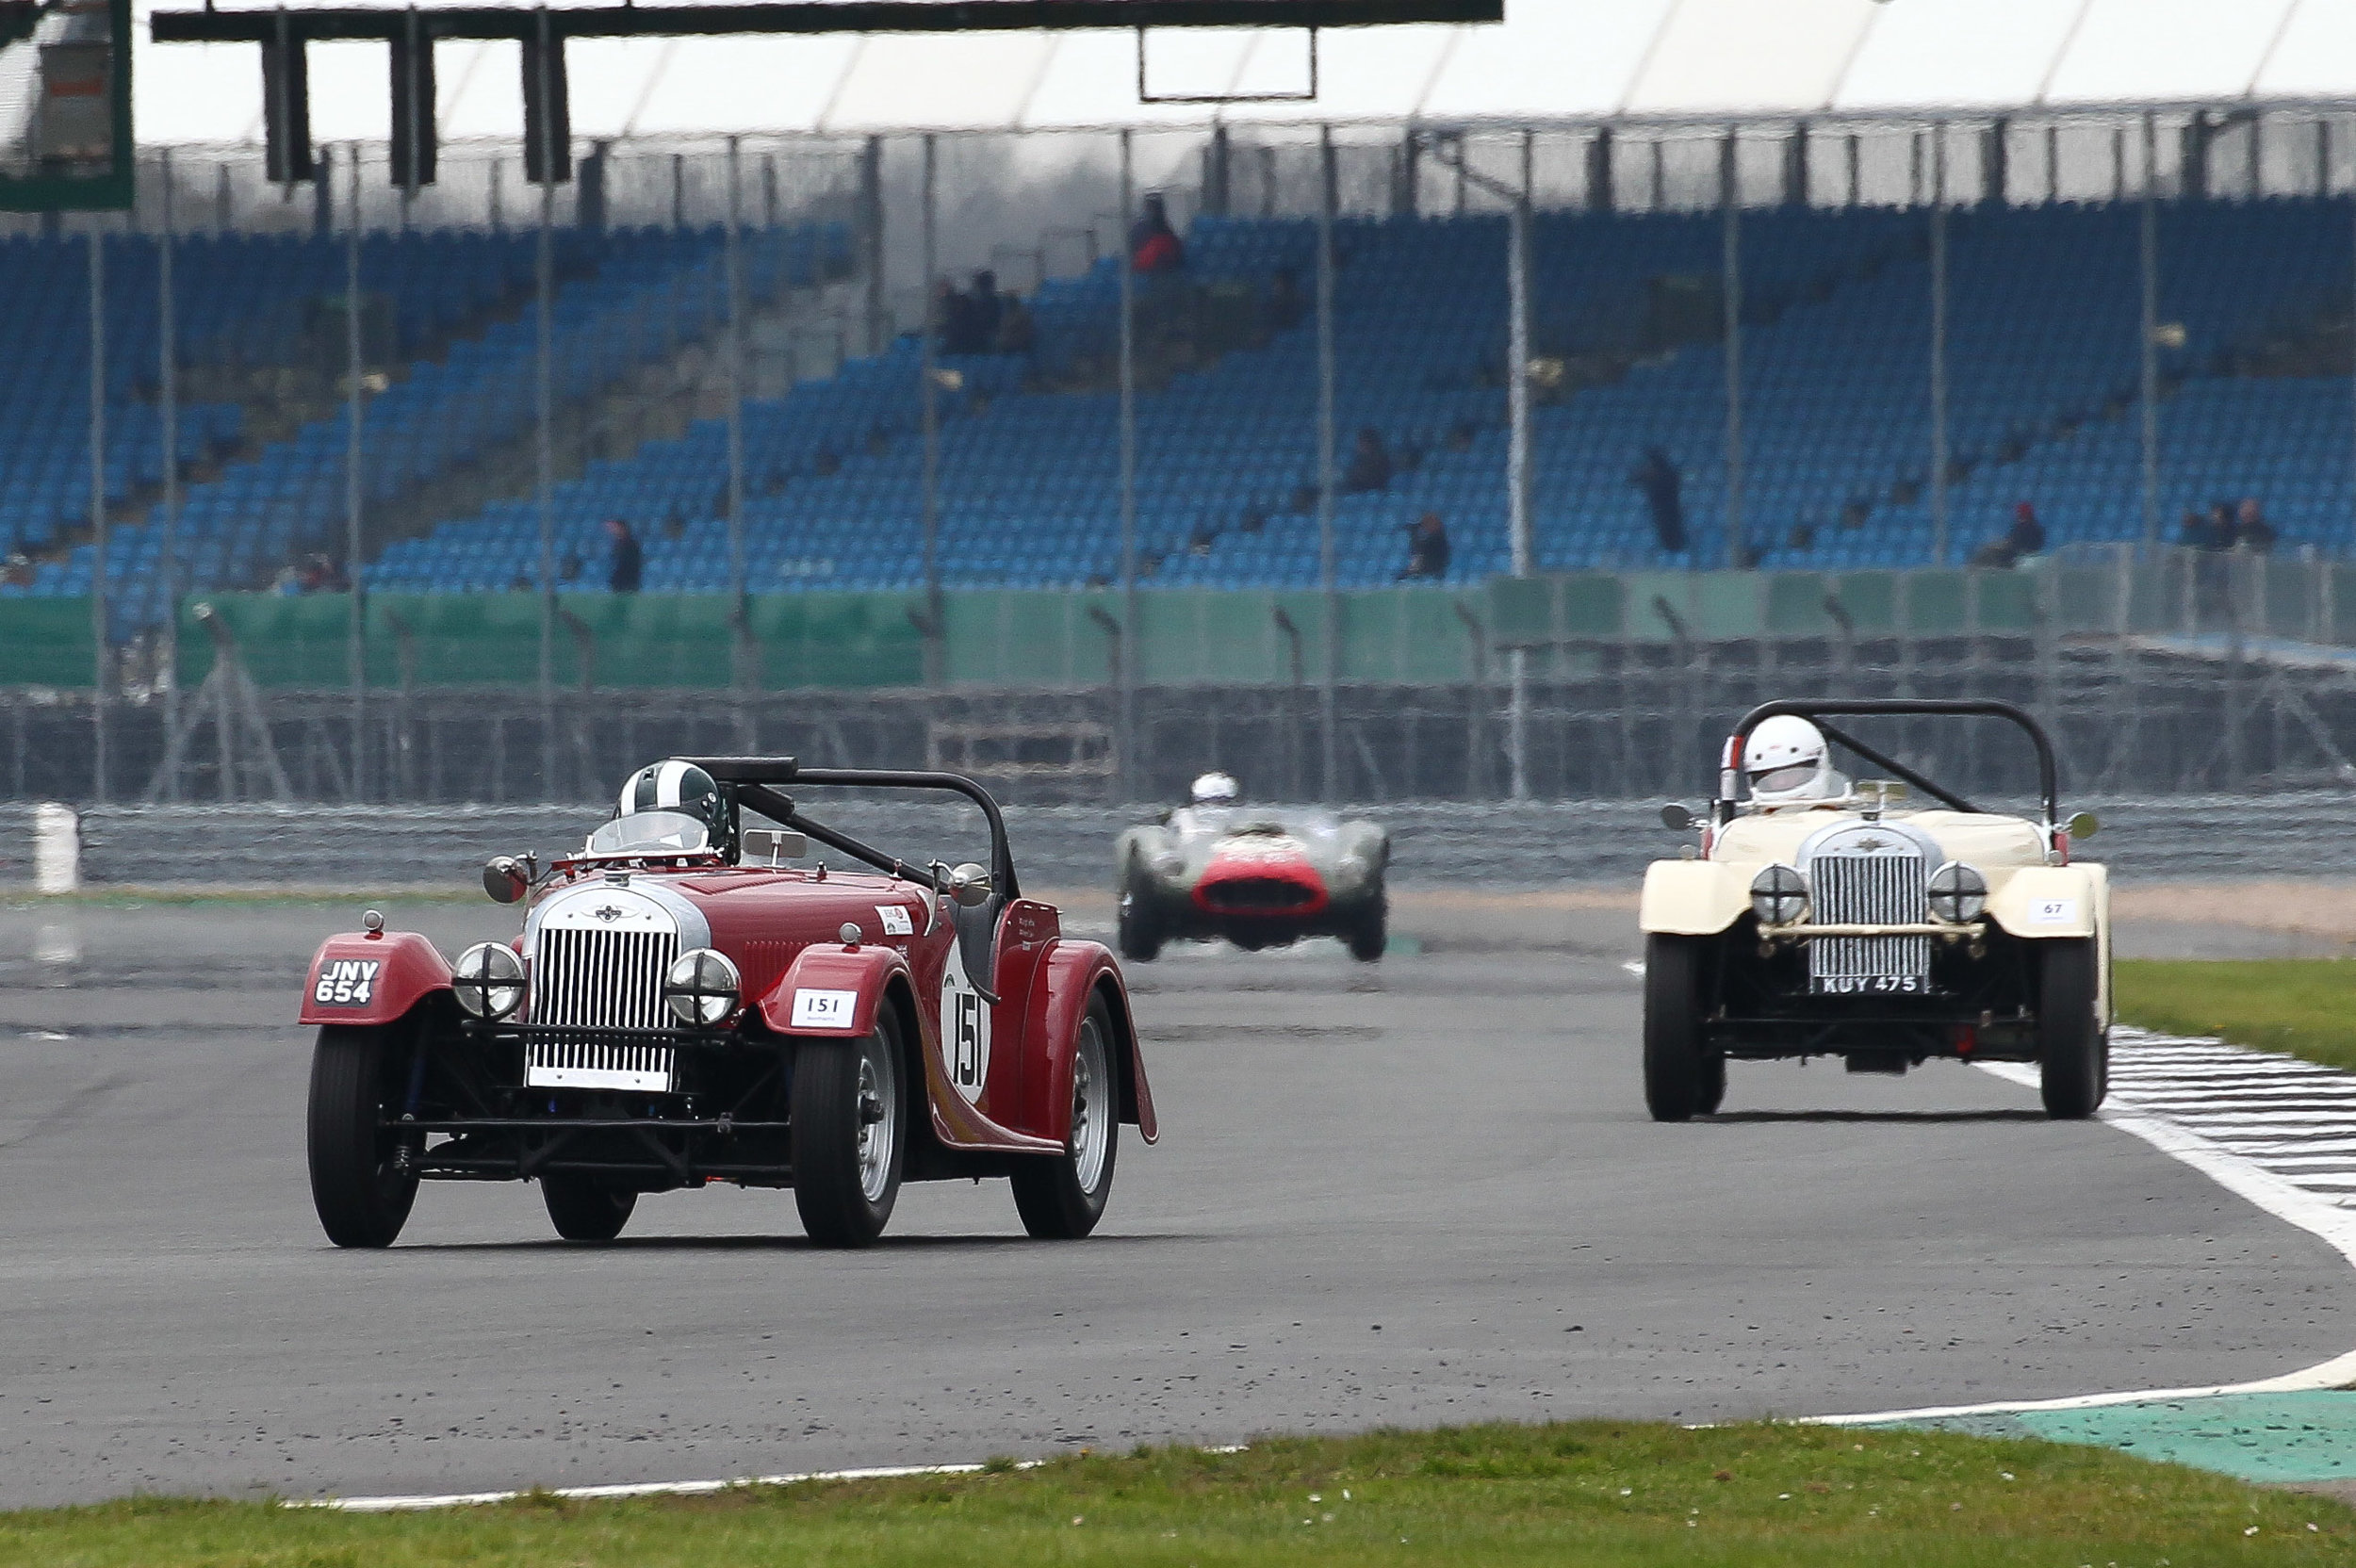 Leigh Sebba & Mark Shears had a load of fun in the early Morgan Plus 4s - Photo - Richard Styles